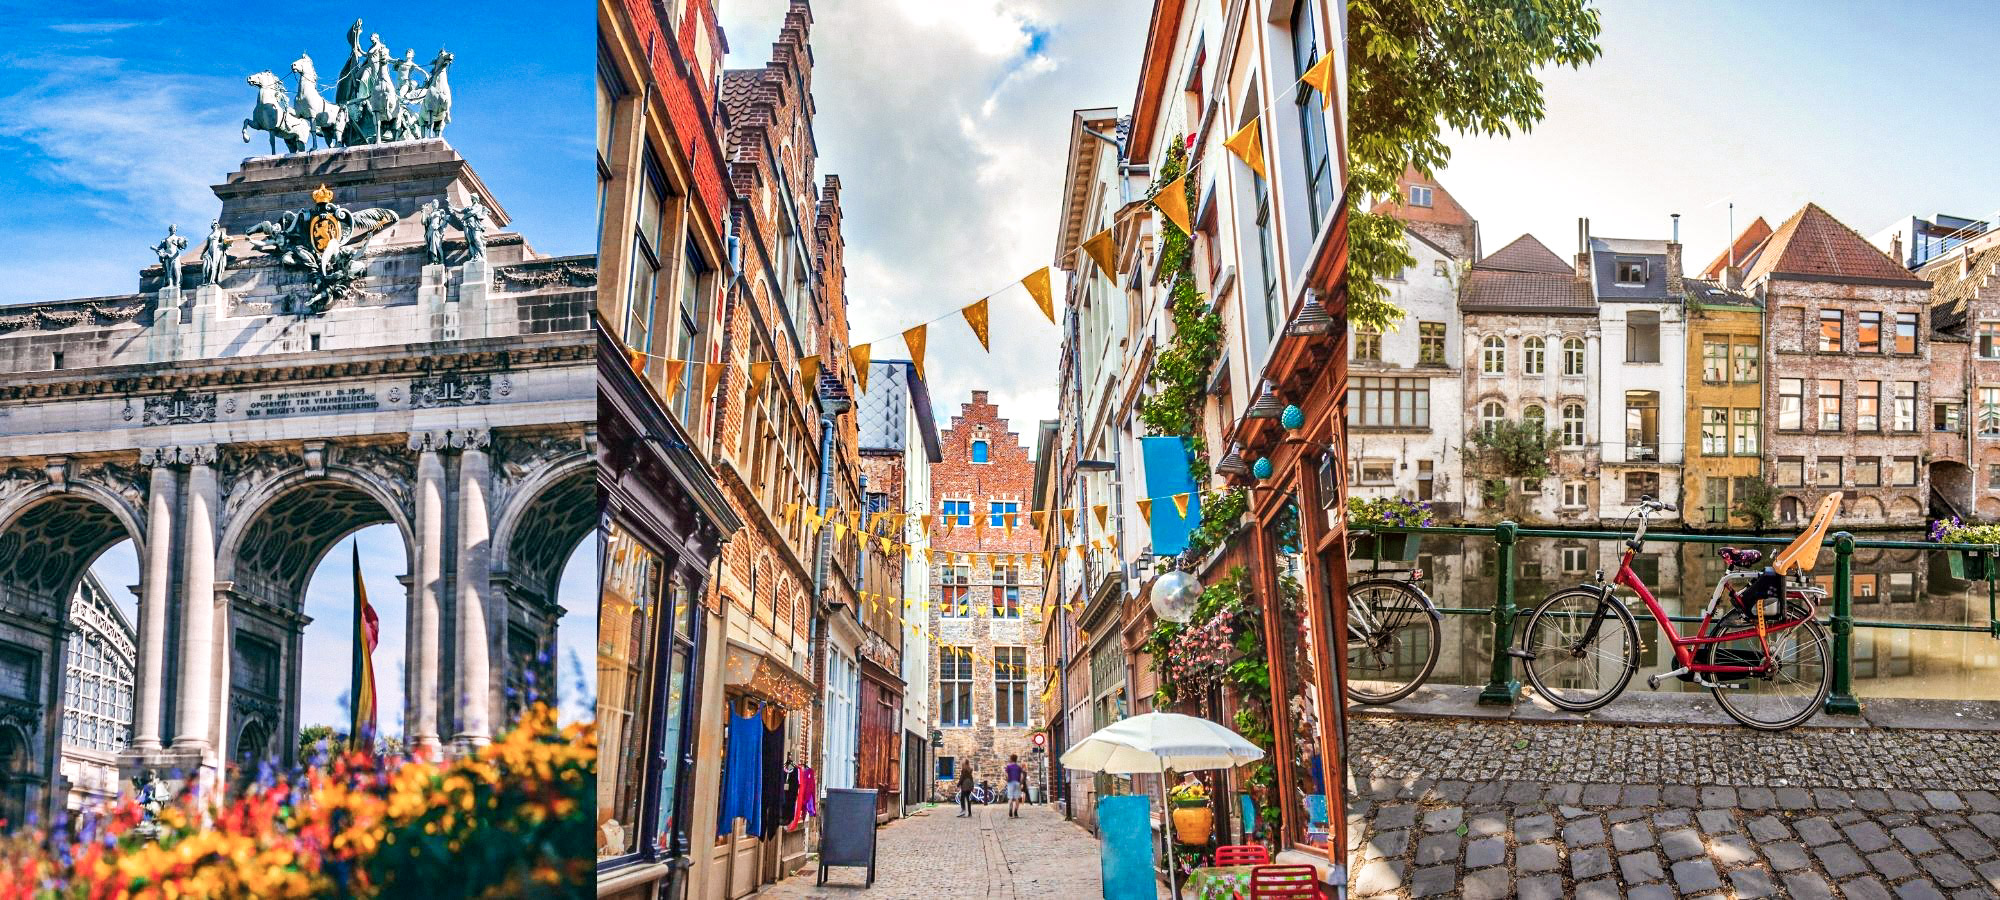 Various attractions in Belgium's city centres including a shopping street